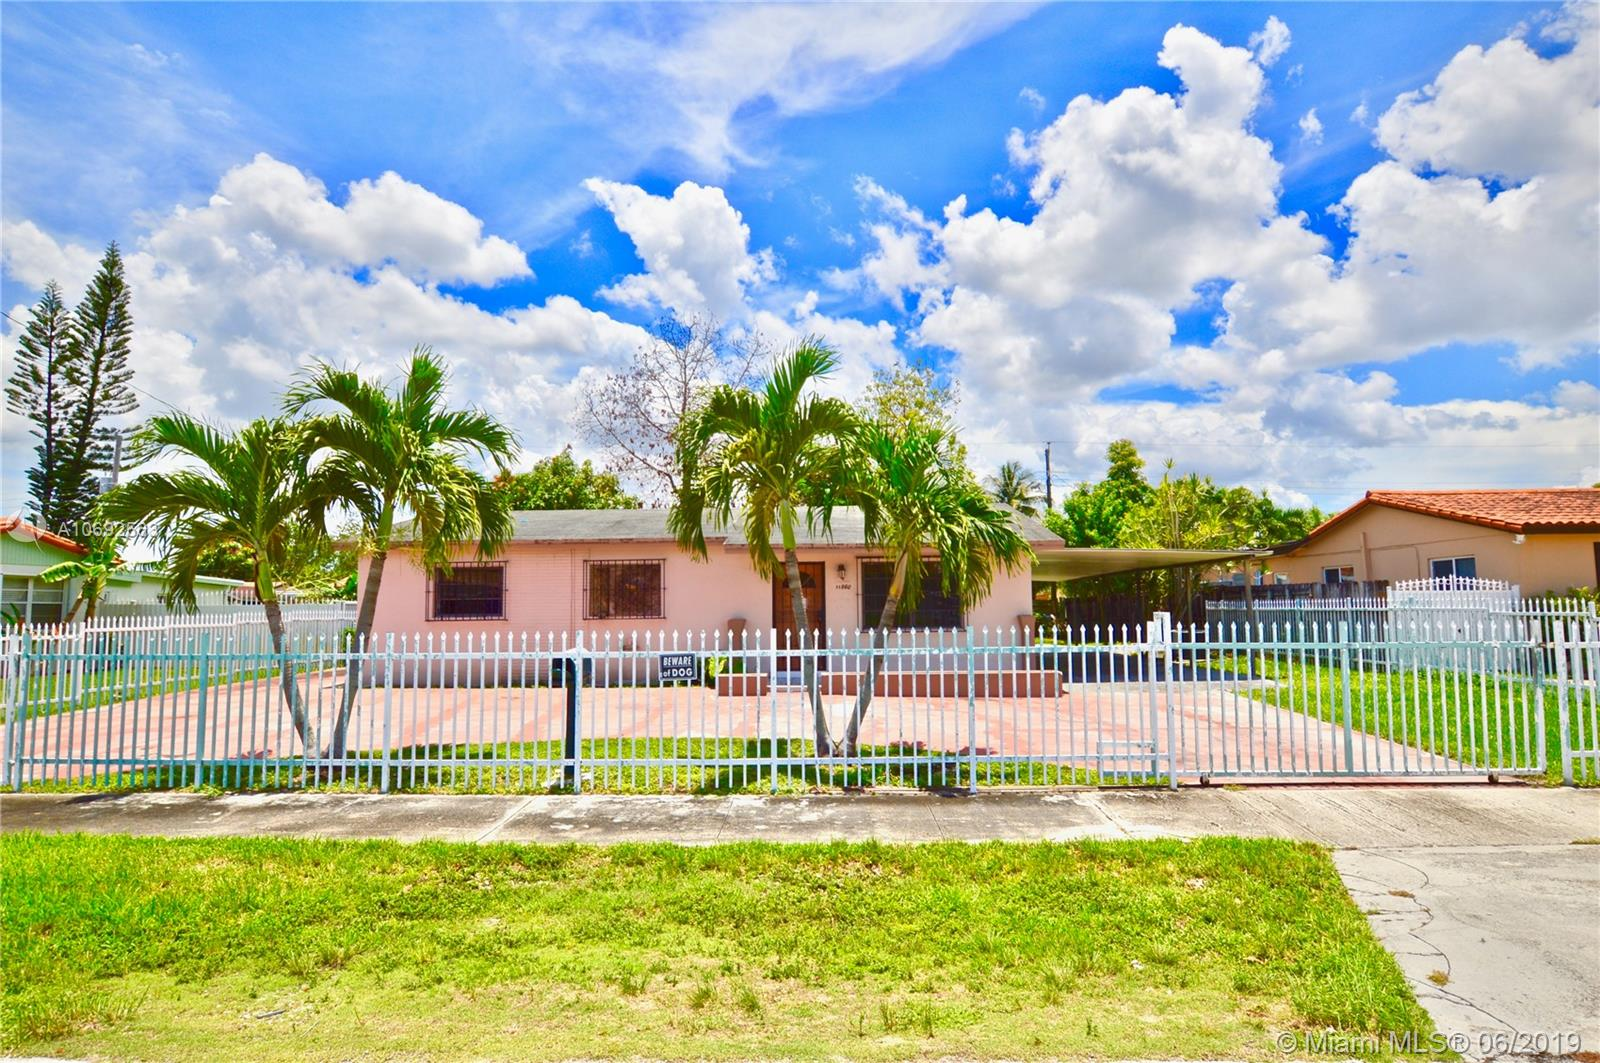 11860 SW 35th St, Kendall, Florida